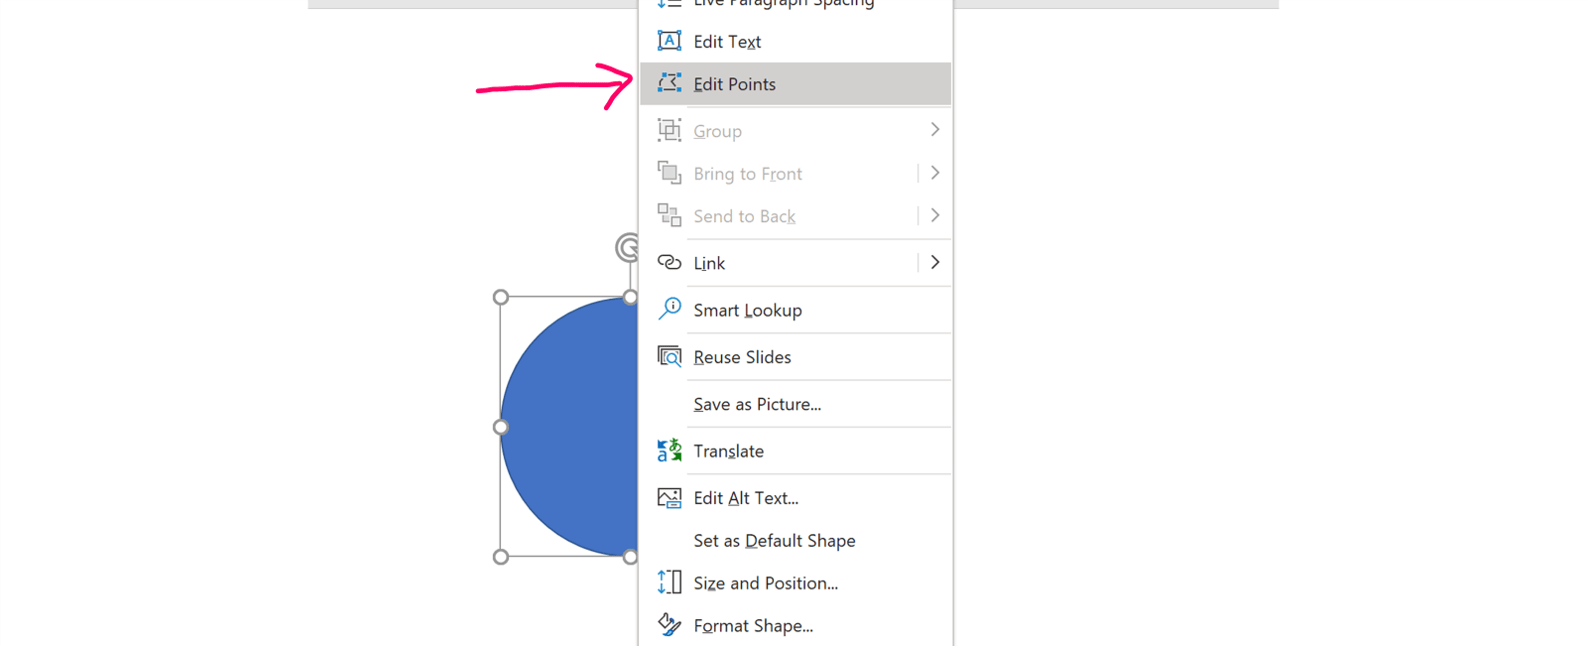 Screenshot of the right-click menu in PowerPoint showing where the Edit Points tool is located